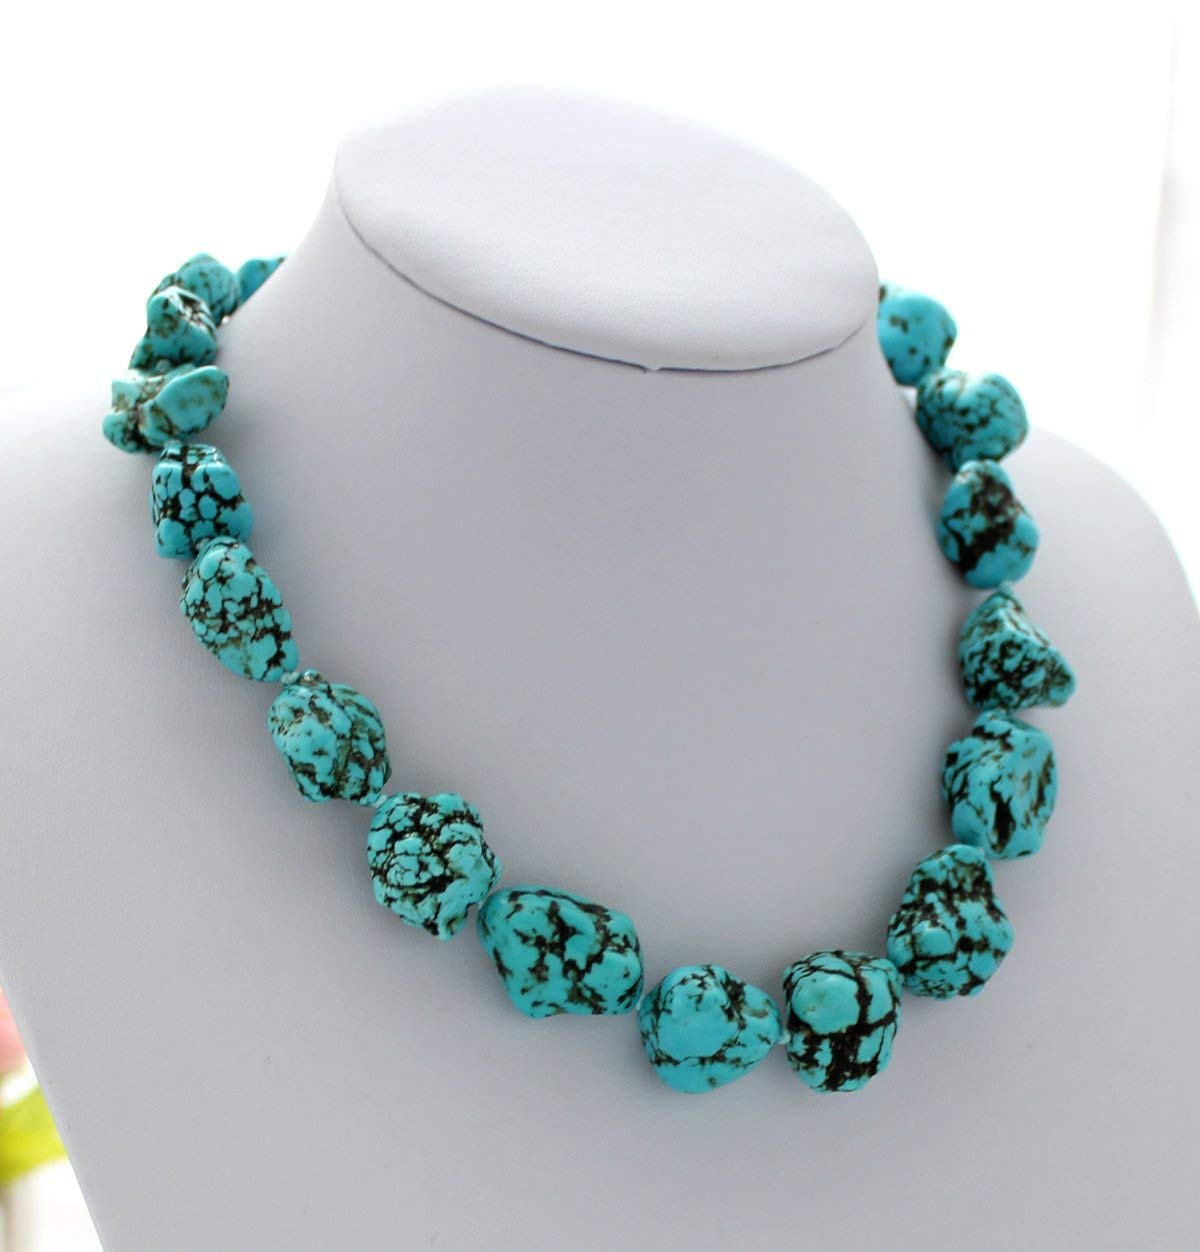 Chunky Gemstone Statement Necklace Zoom Jewelry Green and Gold Statement Necklace Turquoise Bead Necklace Green and Gold Necklace